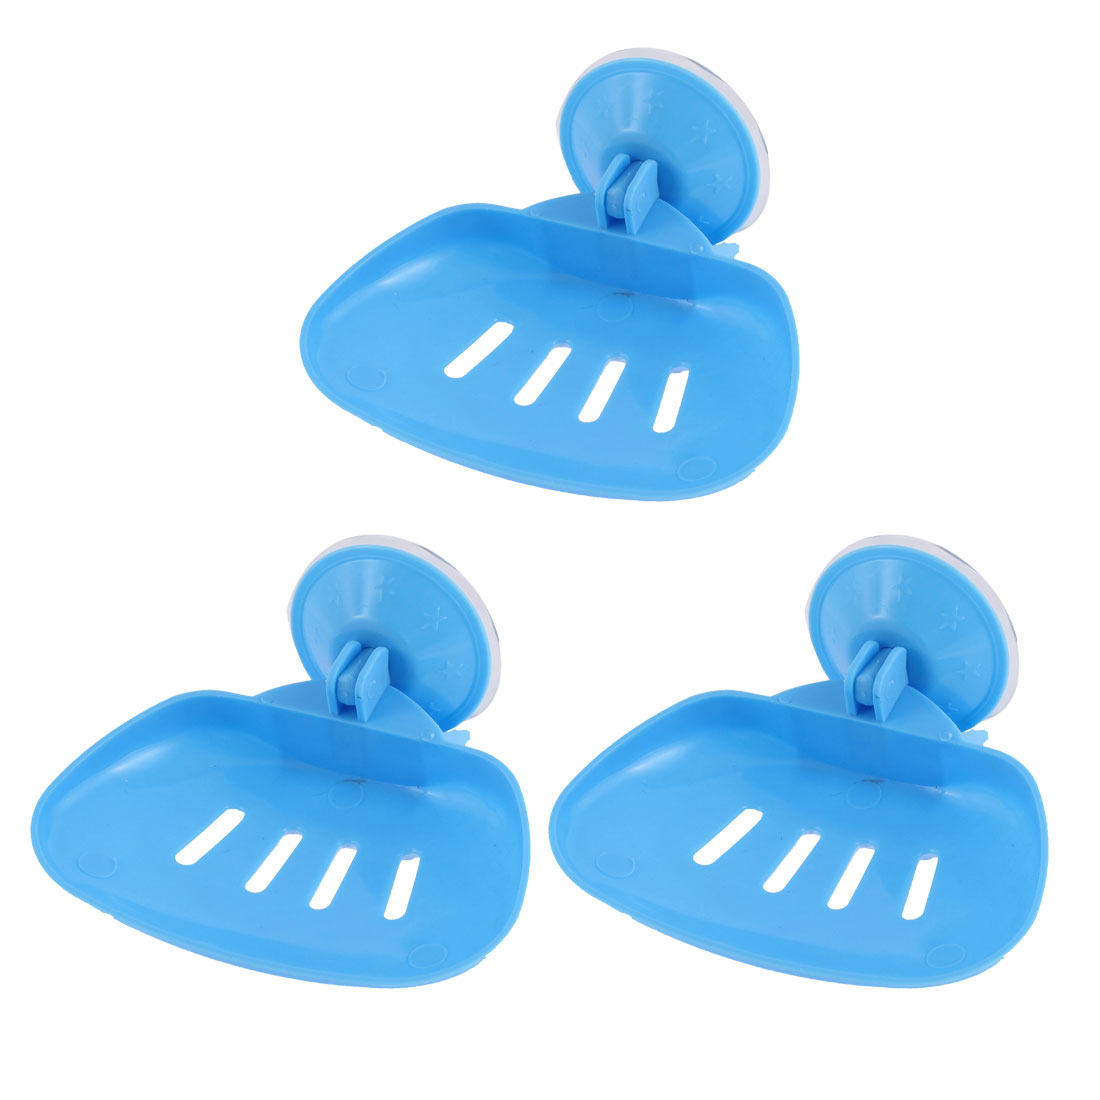 Household Bathroom Plastic Hollow Out Suction Cup Soap Holder White 3 Pcs